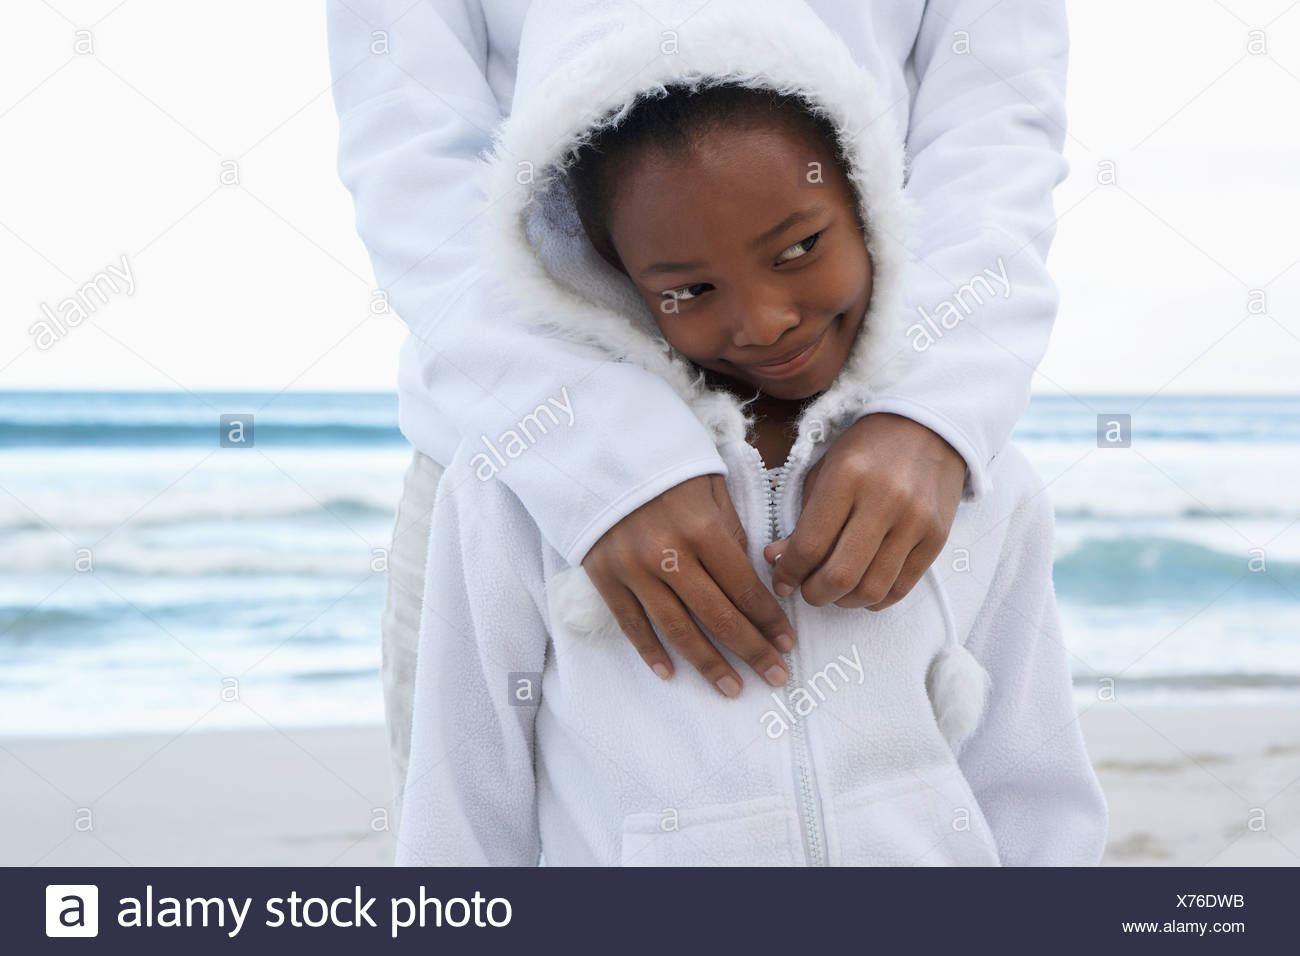 Mother and daughter 8 10 in white clothing standing on beach shy girl making sideways glance - Stock Image